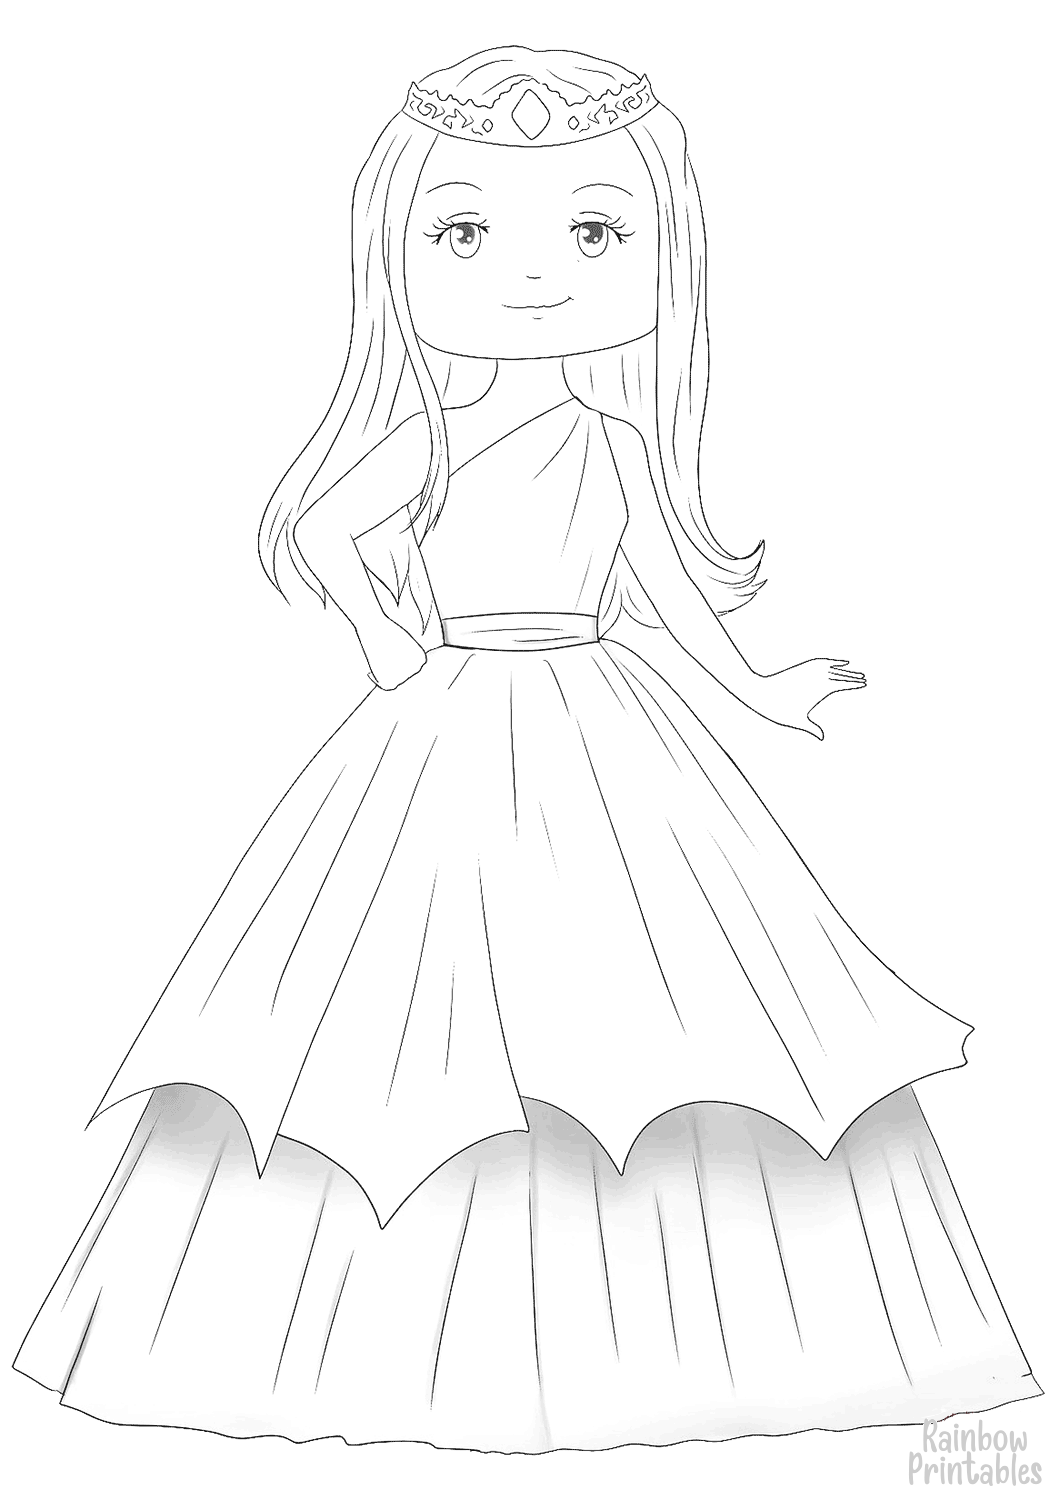 Pencil Draw Cute Fashionable Princess in Dress Figure Free Clipart Coloring Pages for Kids Adults Art Activities Line Art